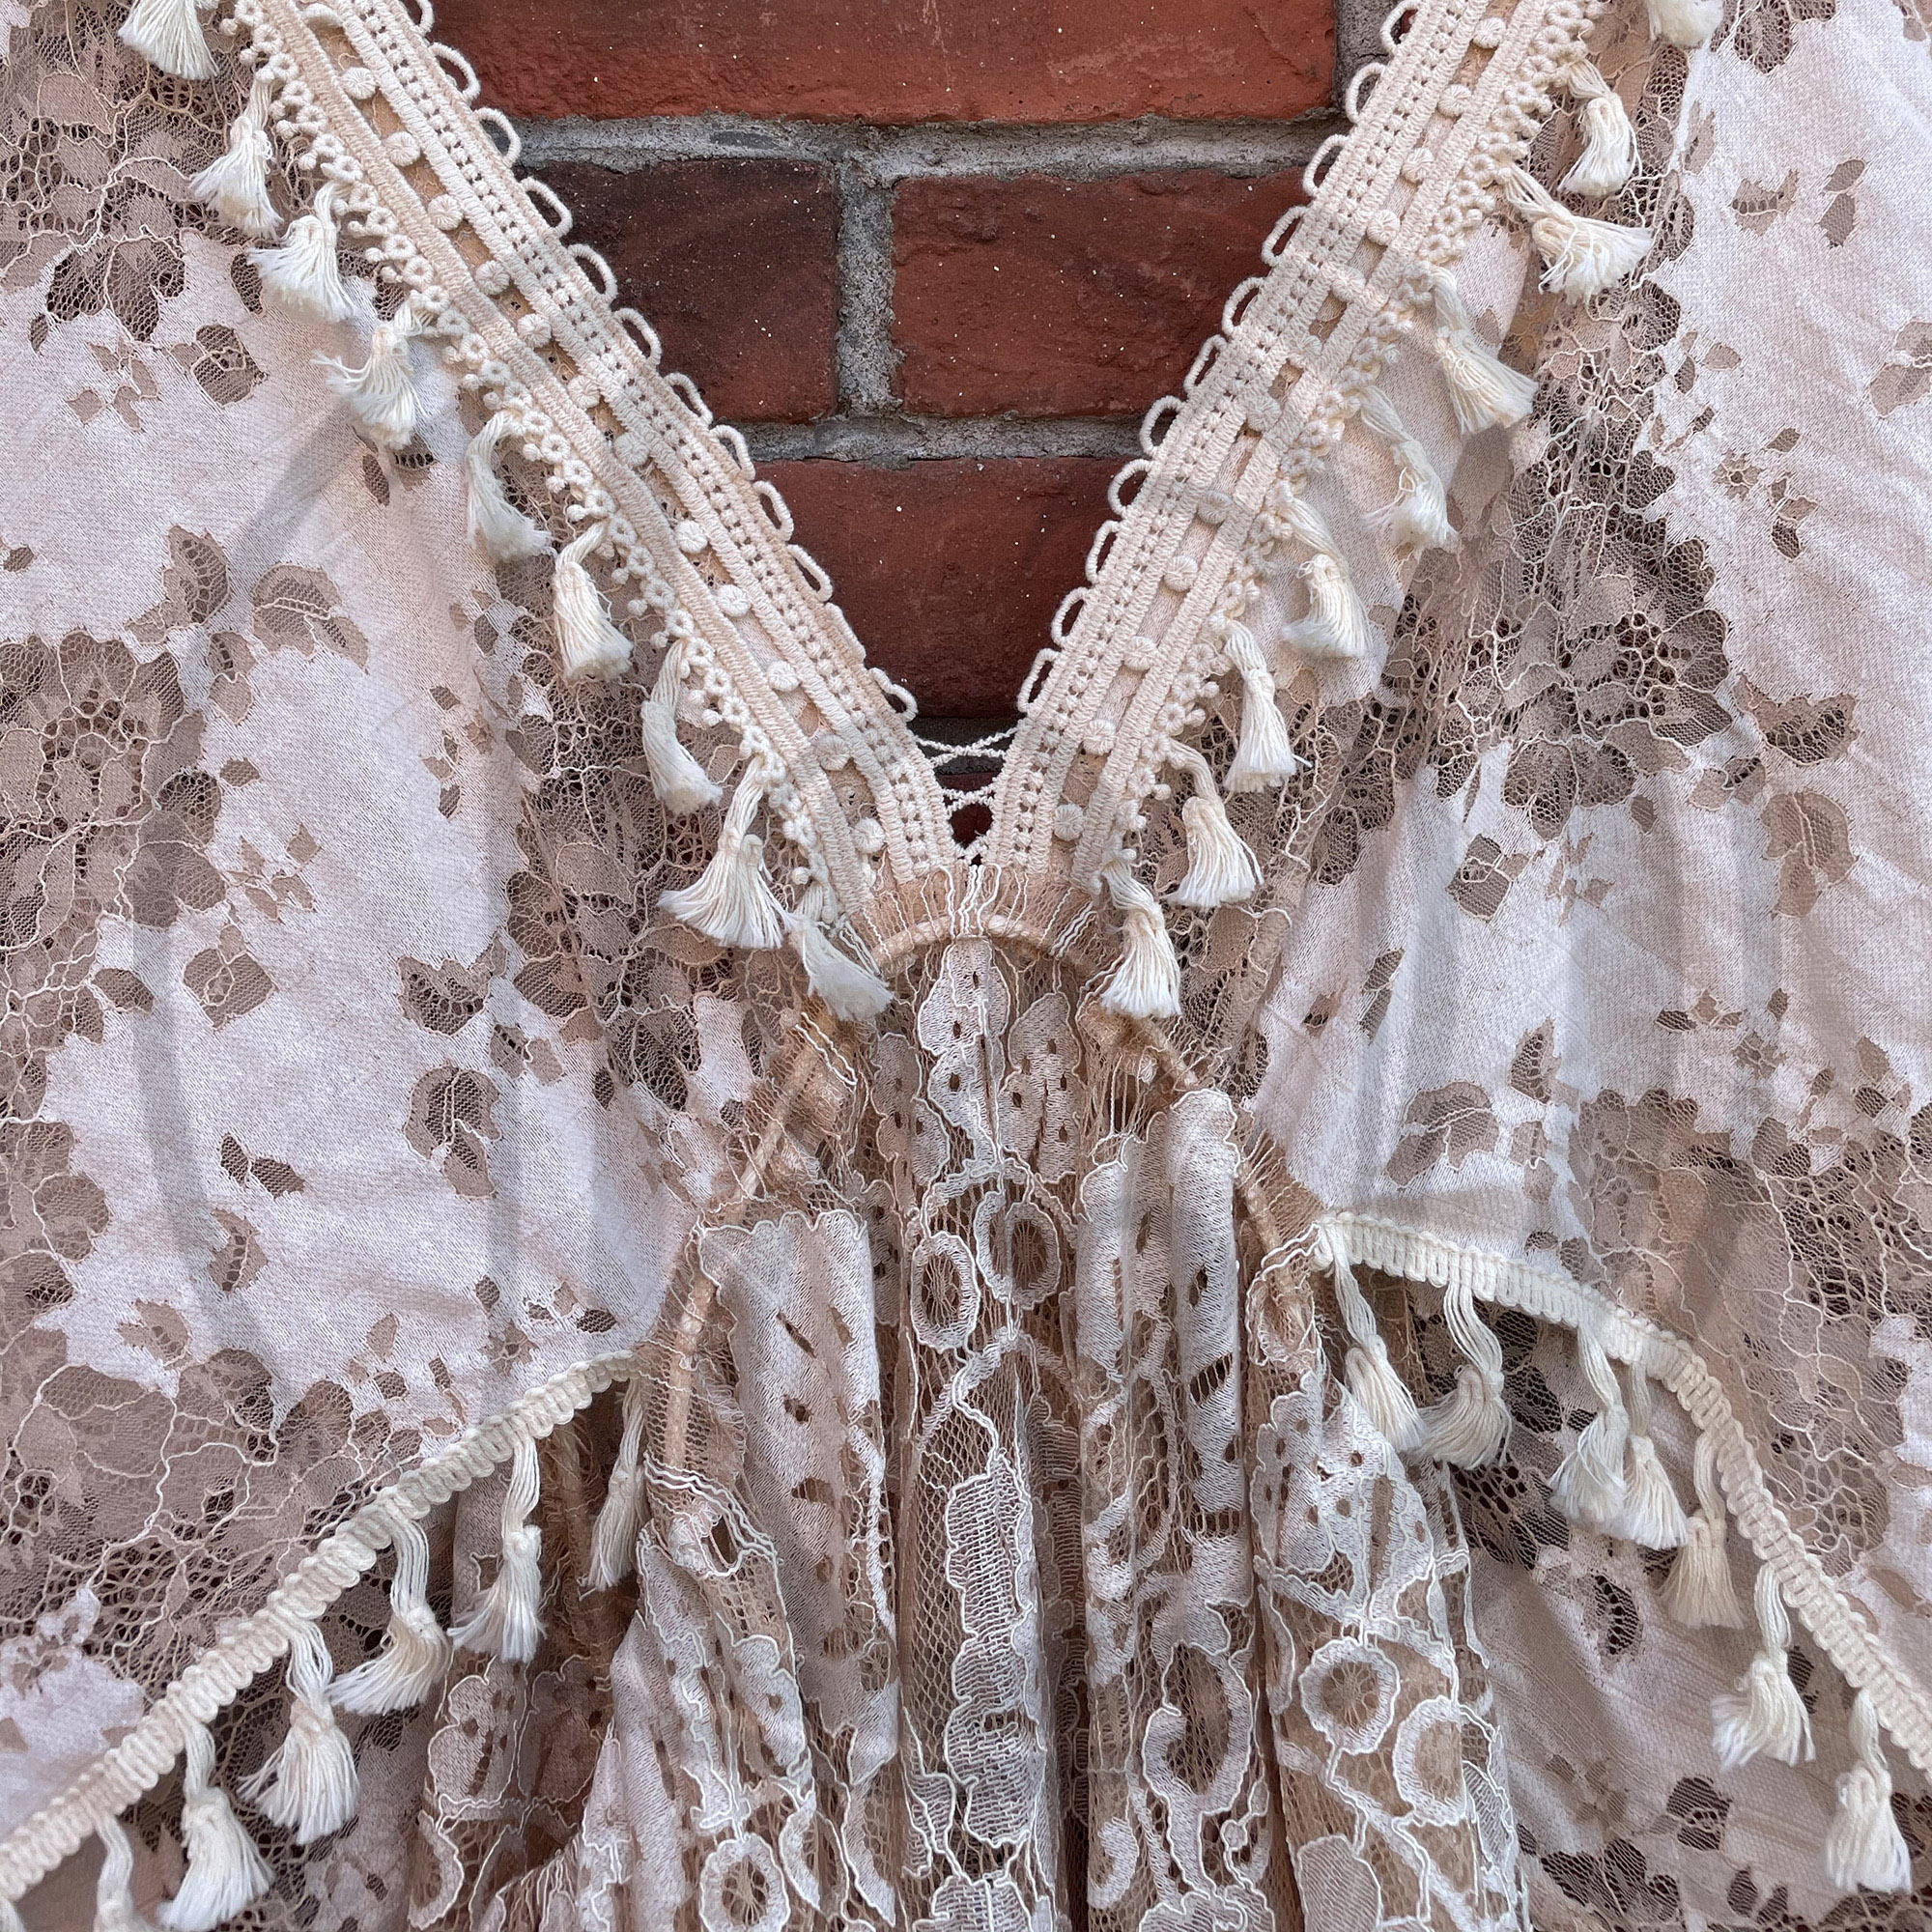 Khaki Boho Lace Photo Shoot Pregnant Robe with Tassles  Maternity Dress Evening Party Costume for Women Photography Accessories enlarge